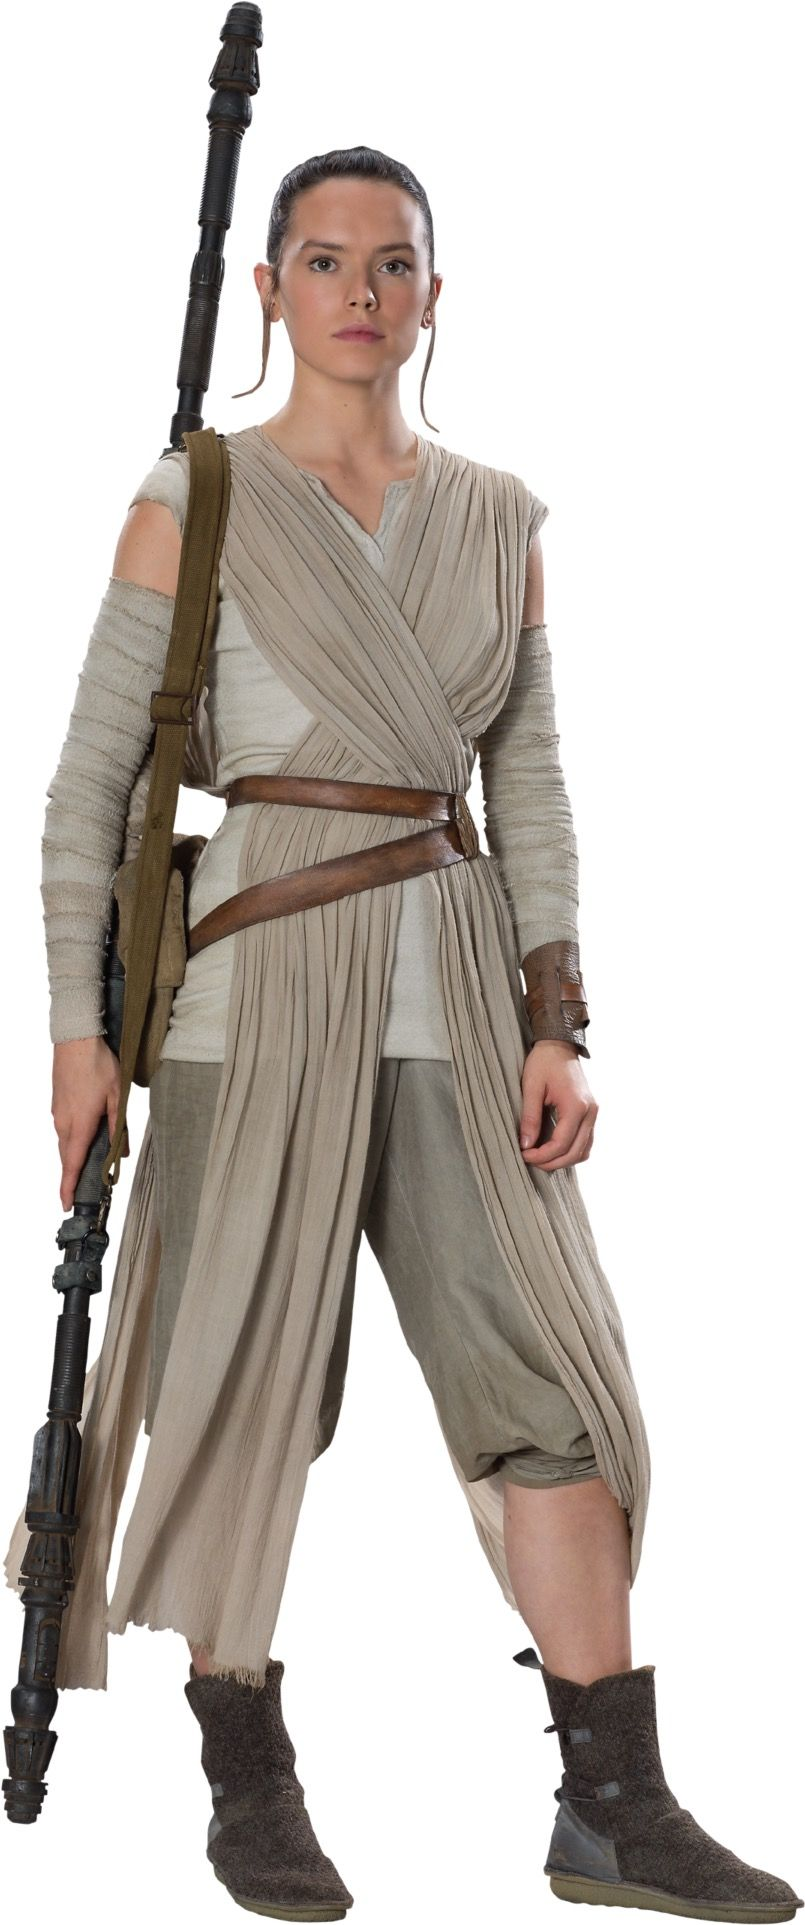 Star Wars Halloween Costumes.Rey Star Wars Costume Star Wars In 2019 Modest Halloween